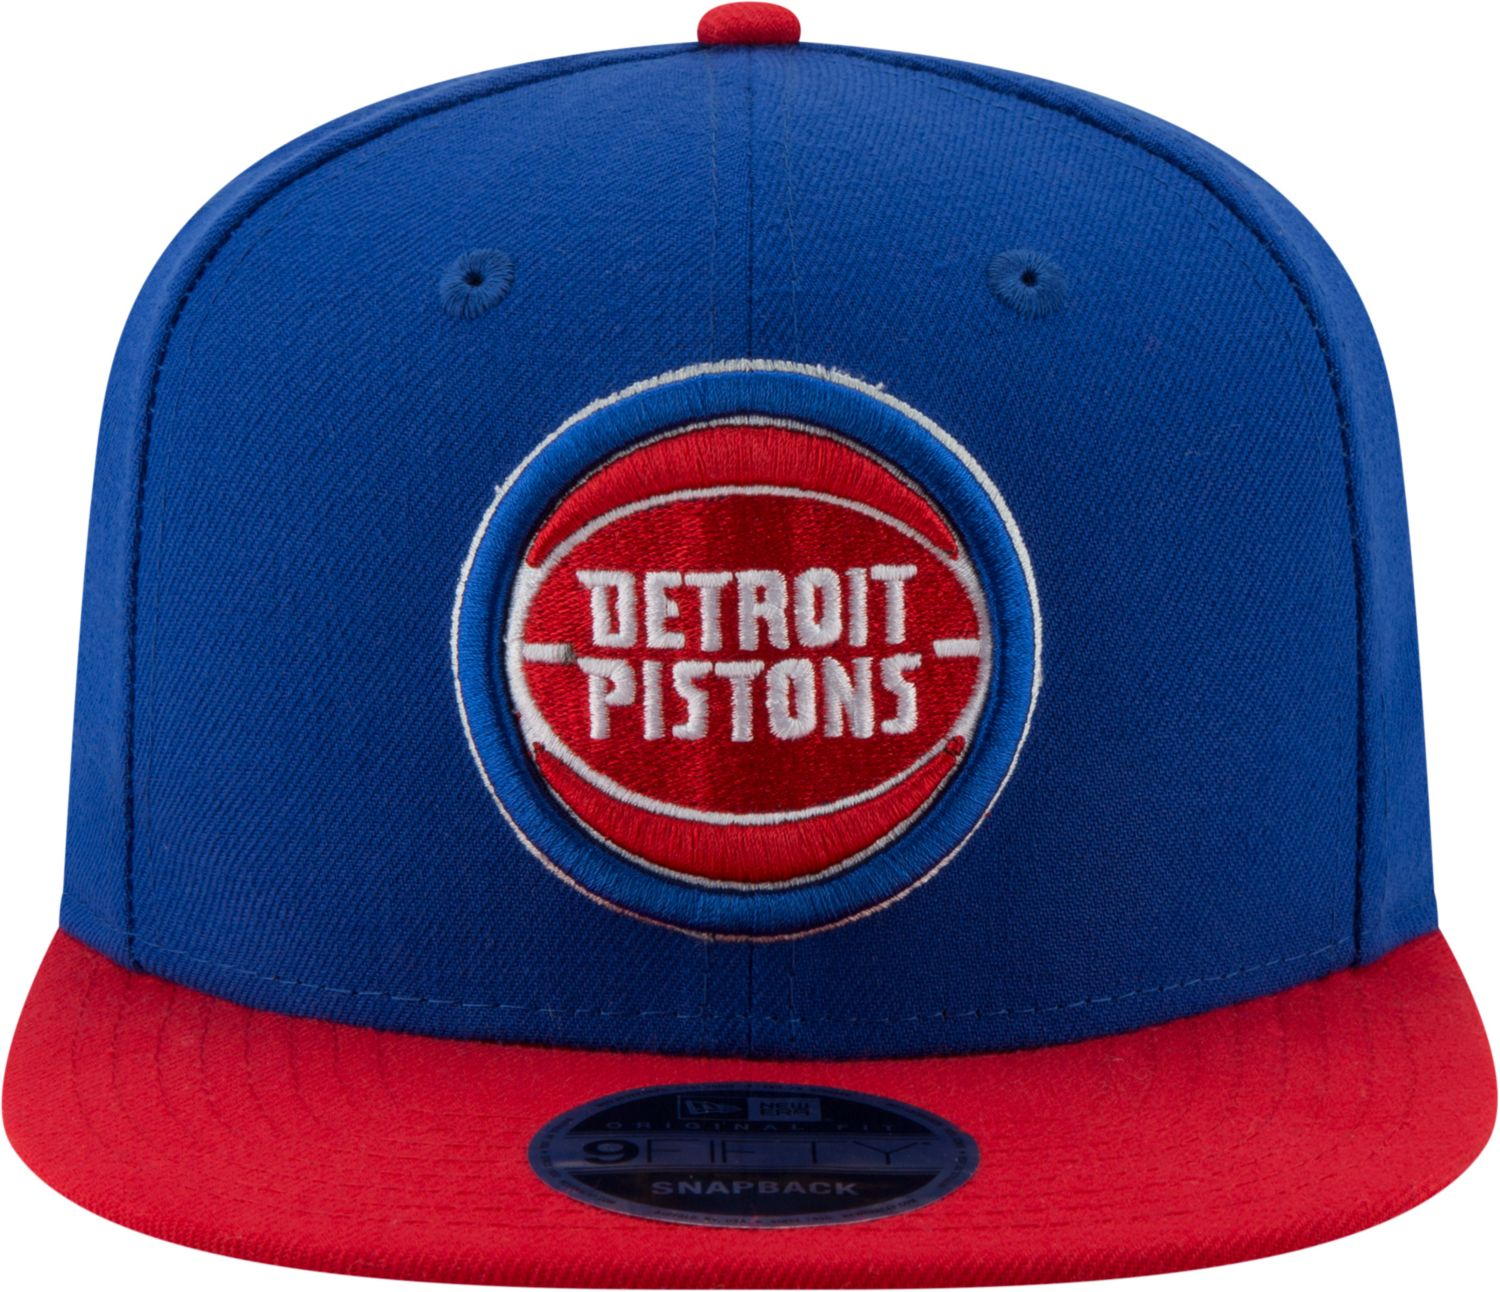 New Era Detroit Pistons 2Tone 9FIFTY NBA Adjustable Snapback Hat / Red + Blue - Pure Detroit